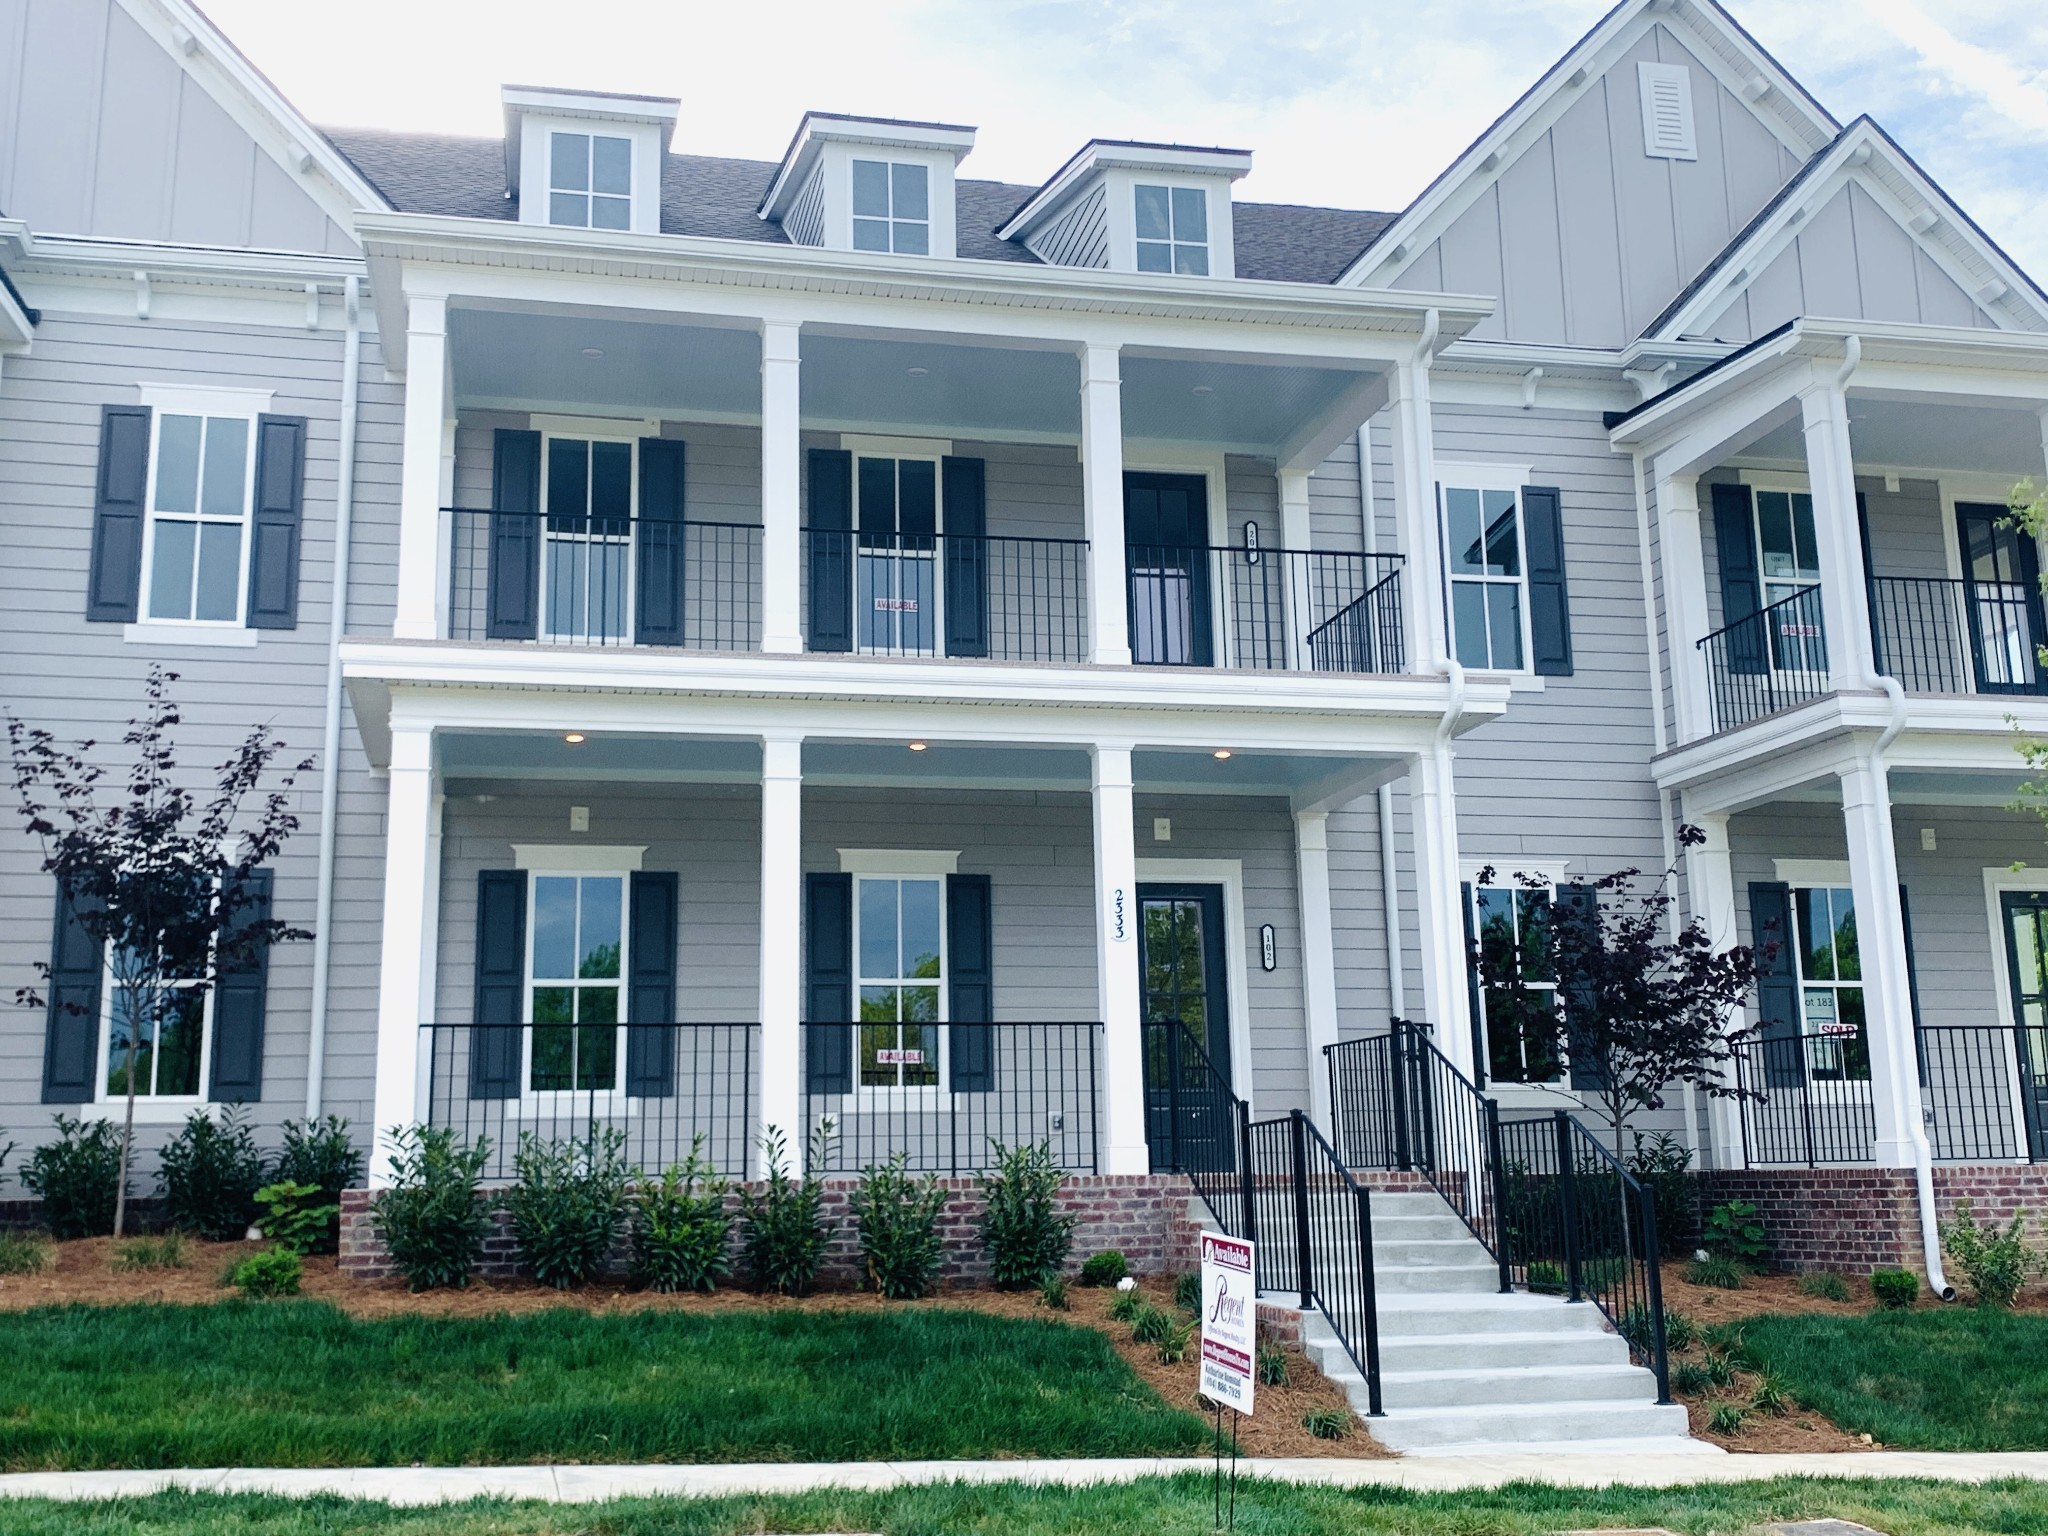 $5,000 Incentive with Sellers Preferred Lender....This CONDO is almost complete, two bedroom, 2 bath, roommate plan, open concept living, large covered porch, gourmet kitchen with island, Selections have been Made. Parking available for residence. Call Katharine For all Showings 404-886-7929. Washer and Dryer Included